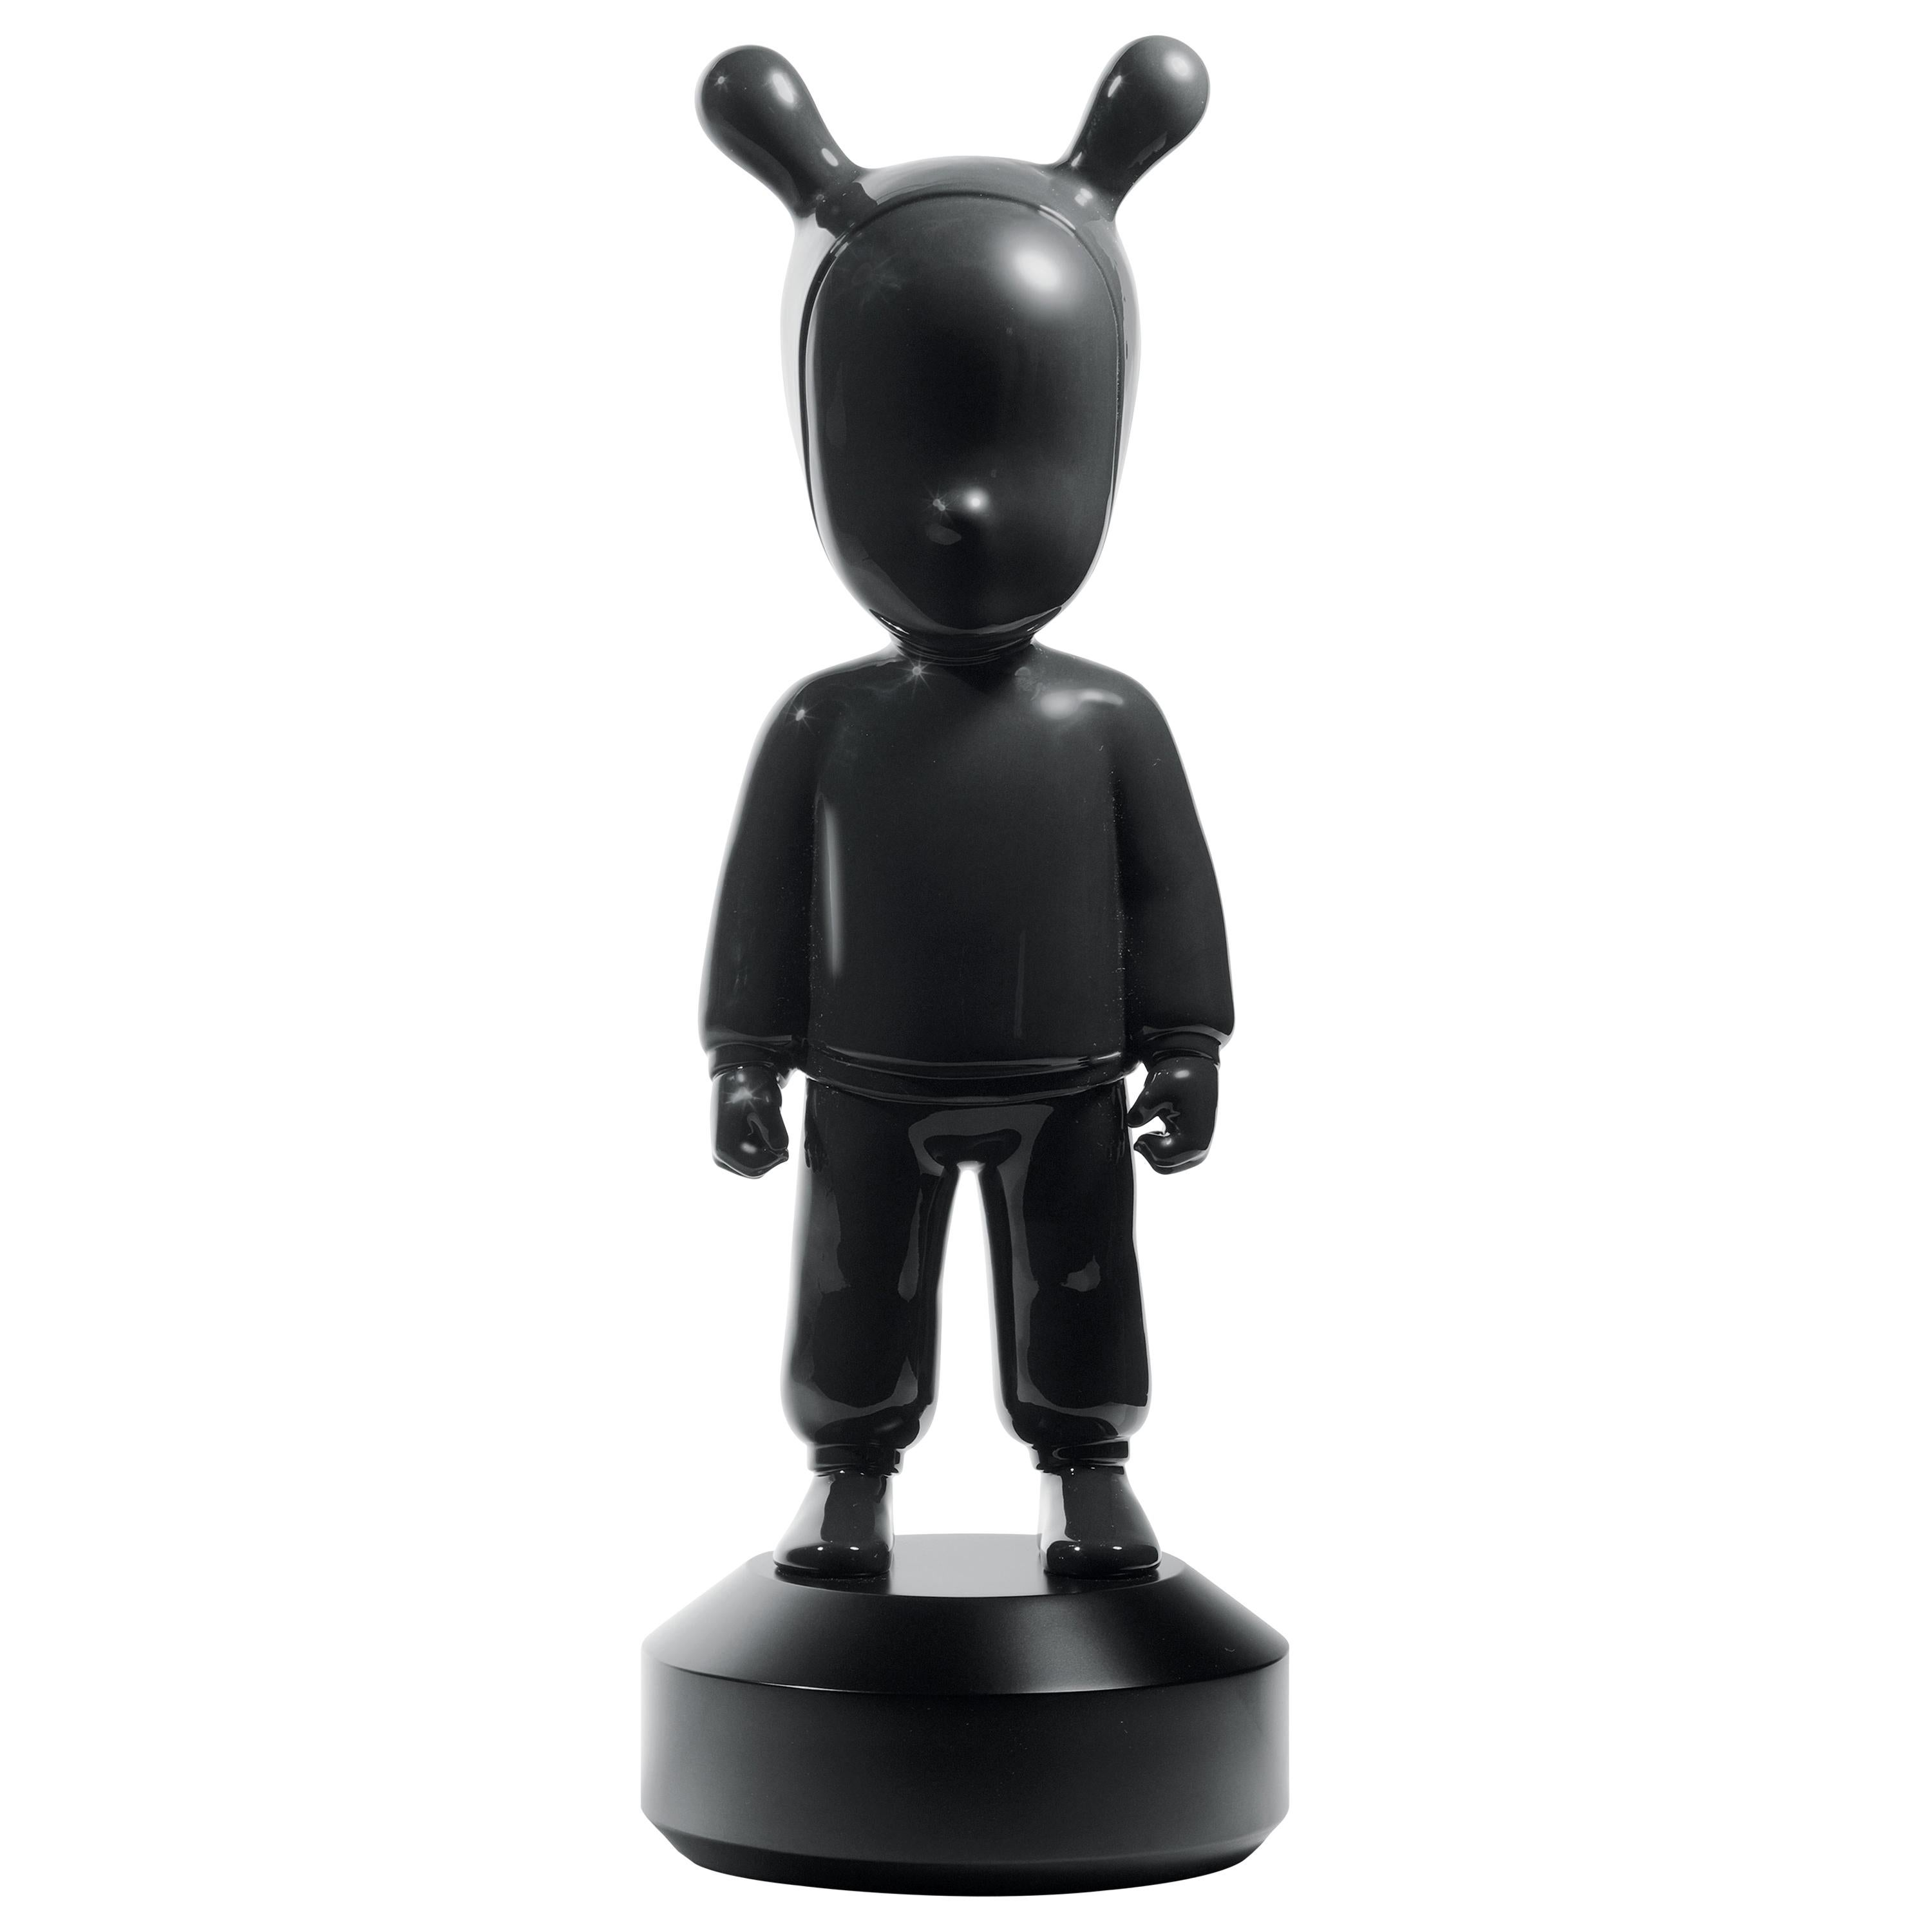 Lladro The Black Guest Figurine Large Model by Jaime Hayon